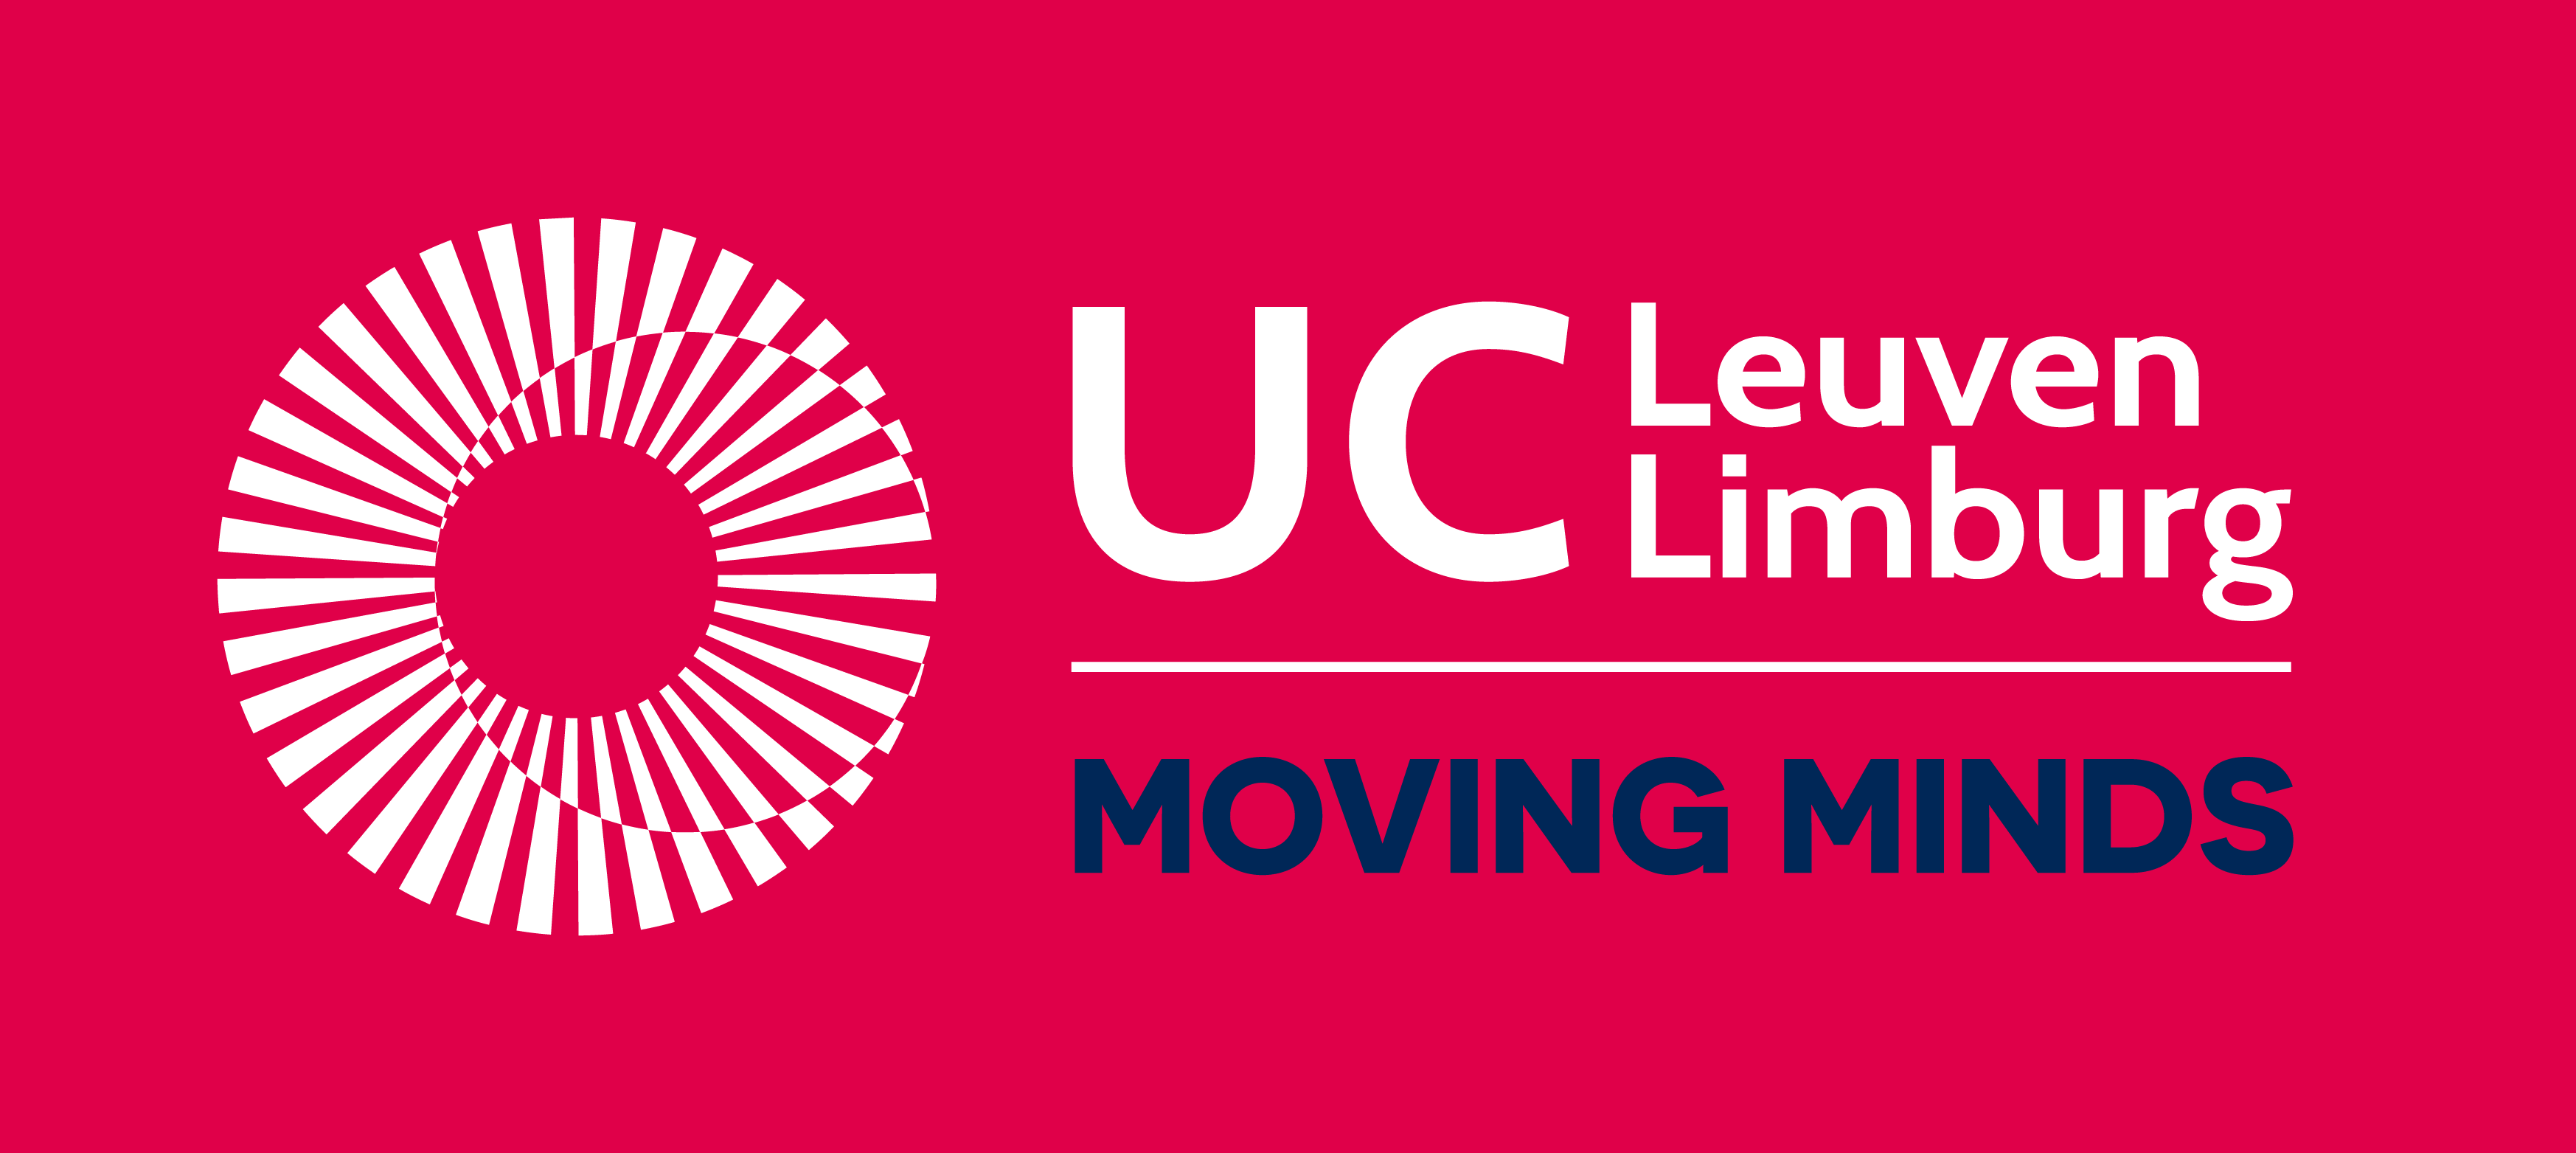 UCLL University of Applied Sciences